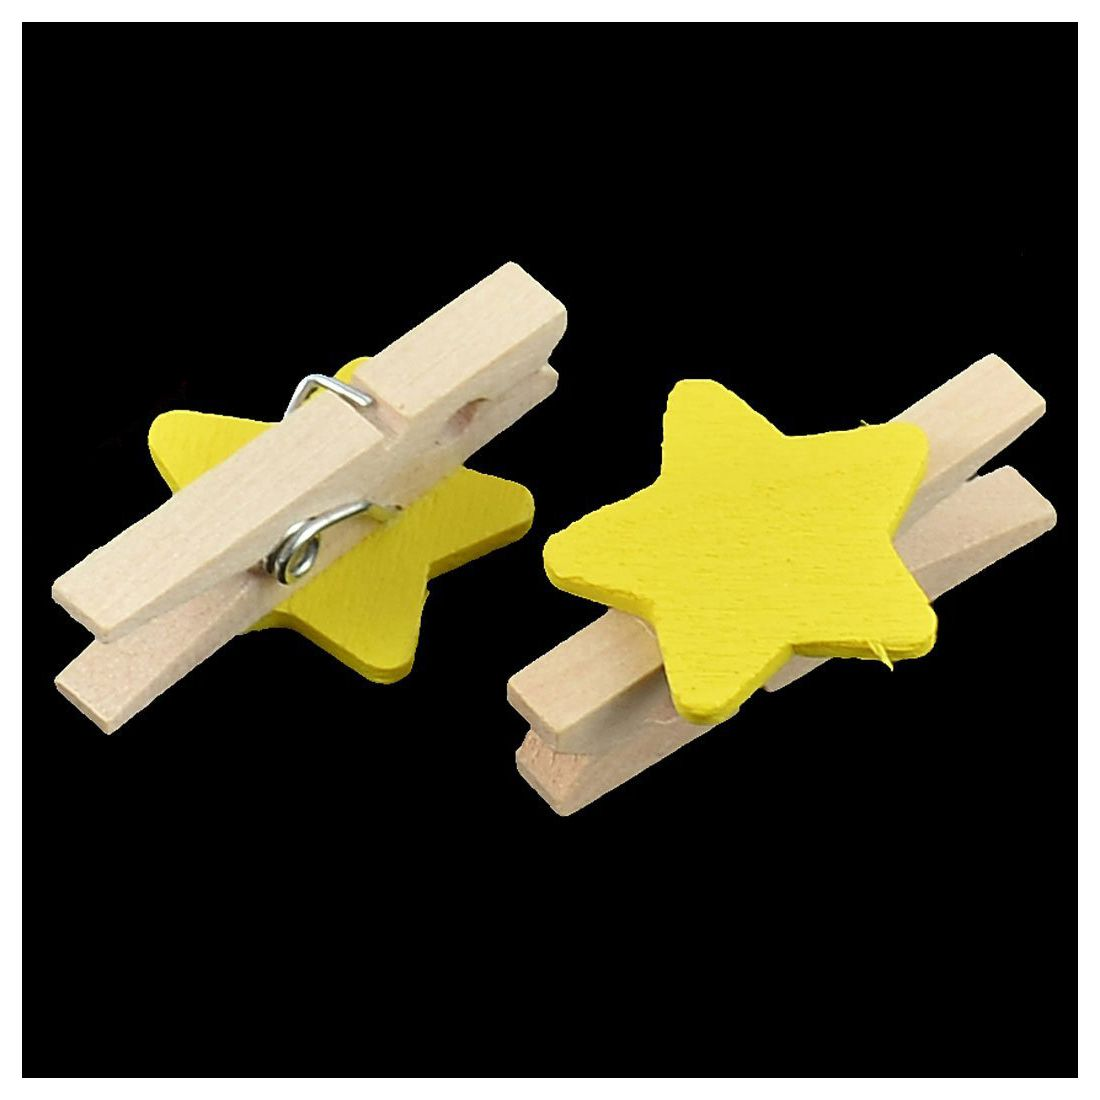 PPYY NEW -Star Pattern Card Photo Paper Spring Peg Mini Wooden Clip 20pcs Yellow